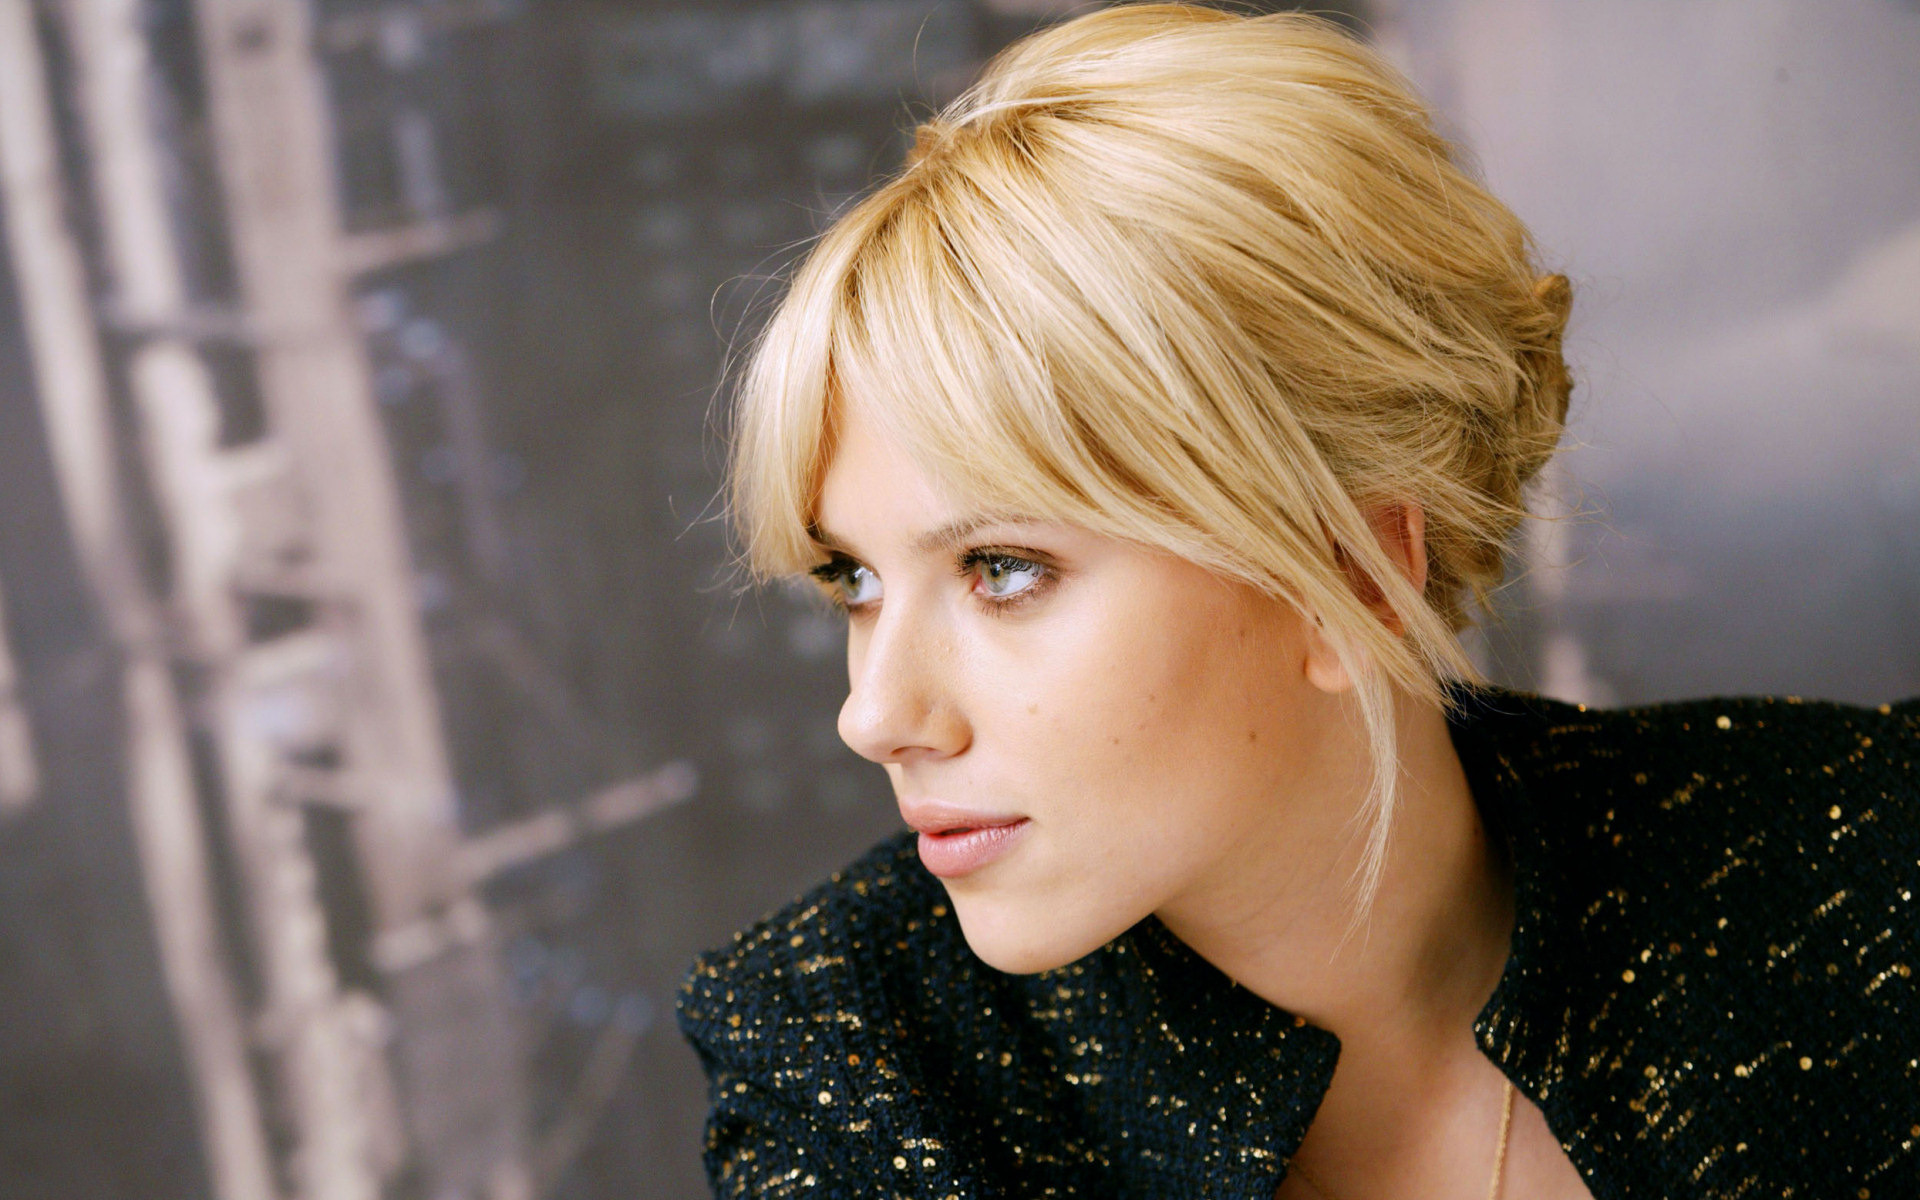 Scarlett Johansson Wallpaper: Scarlett Johansson HD Wallpaper (66+ Images